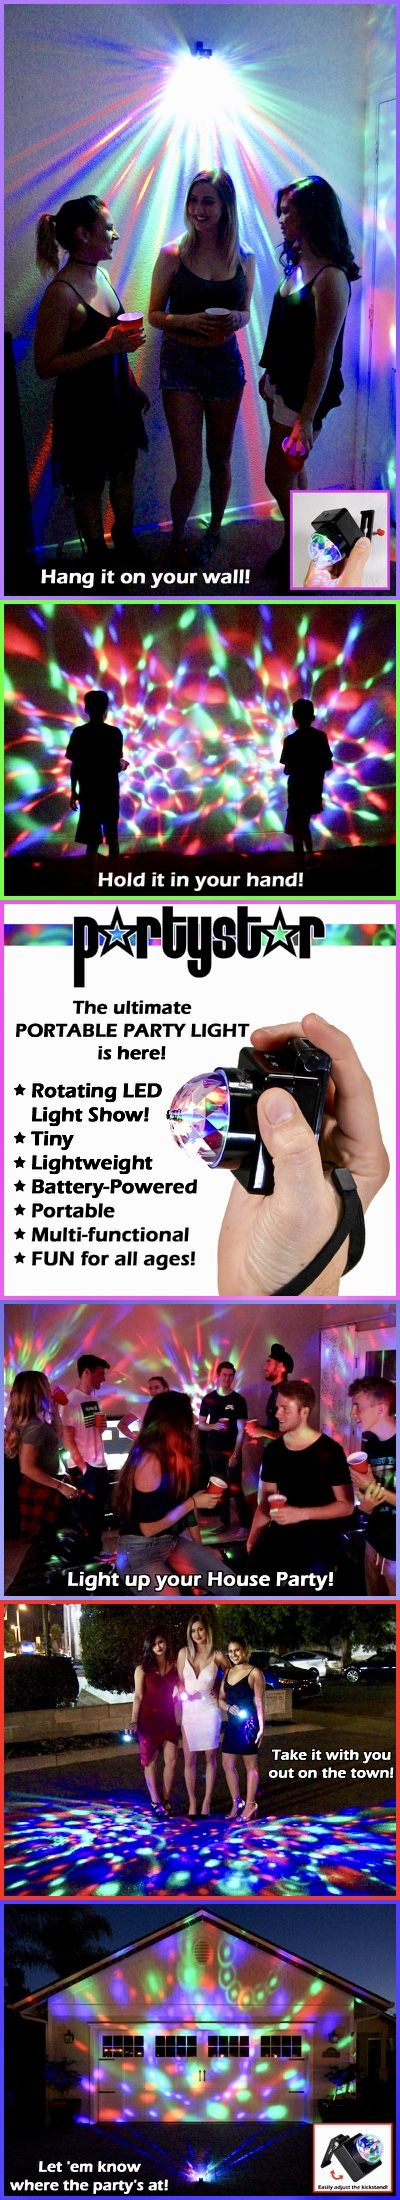 Tiny, lightweight & battery-powered PartyStar is the ultimate Portable Party Light with tons of uses!  House parties, holidays, birthdays, wedding receptions, bachelorette parties, school dances, camping, nights out on the town... the list goes on and on!  Get 1 for $19.99 or 2 for $24.99 with FREE SHIPPING!